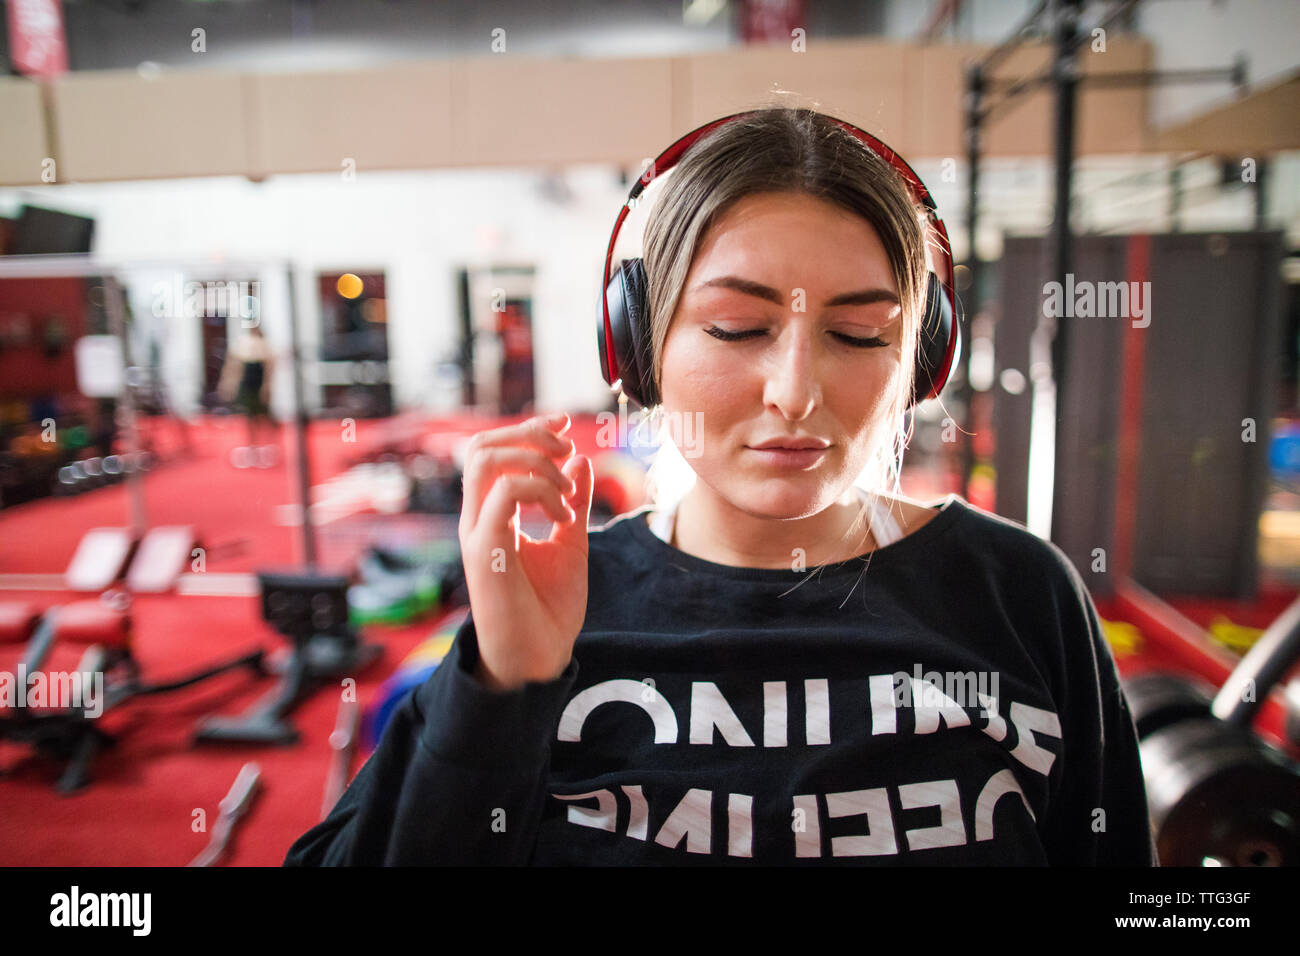 Attractive woman listening to music during a workout at the gym. Stock Photo